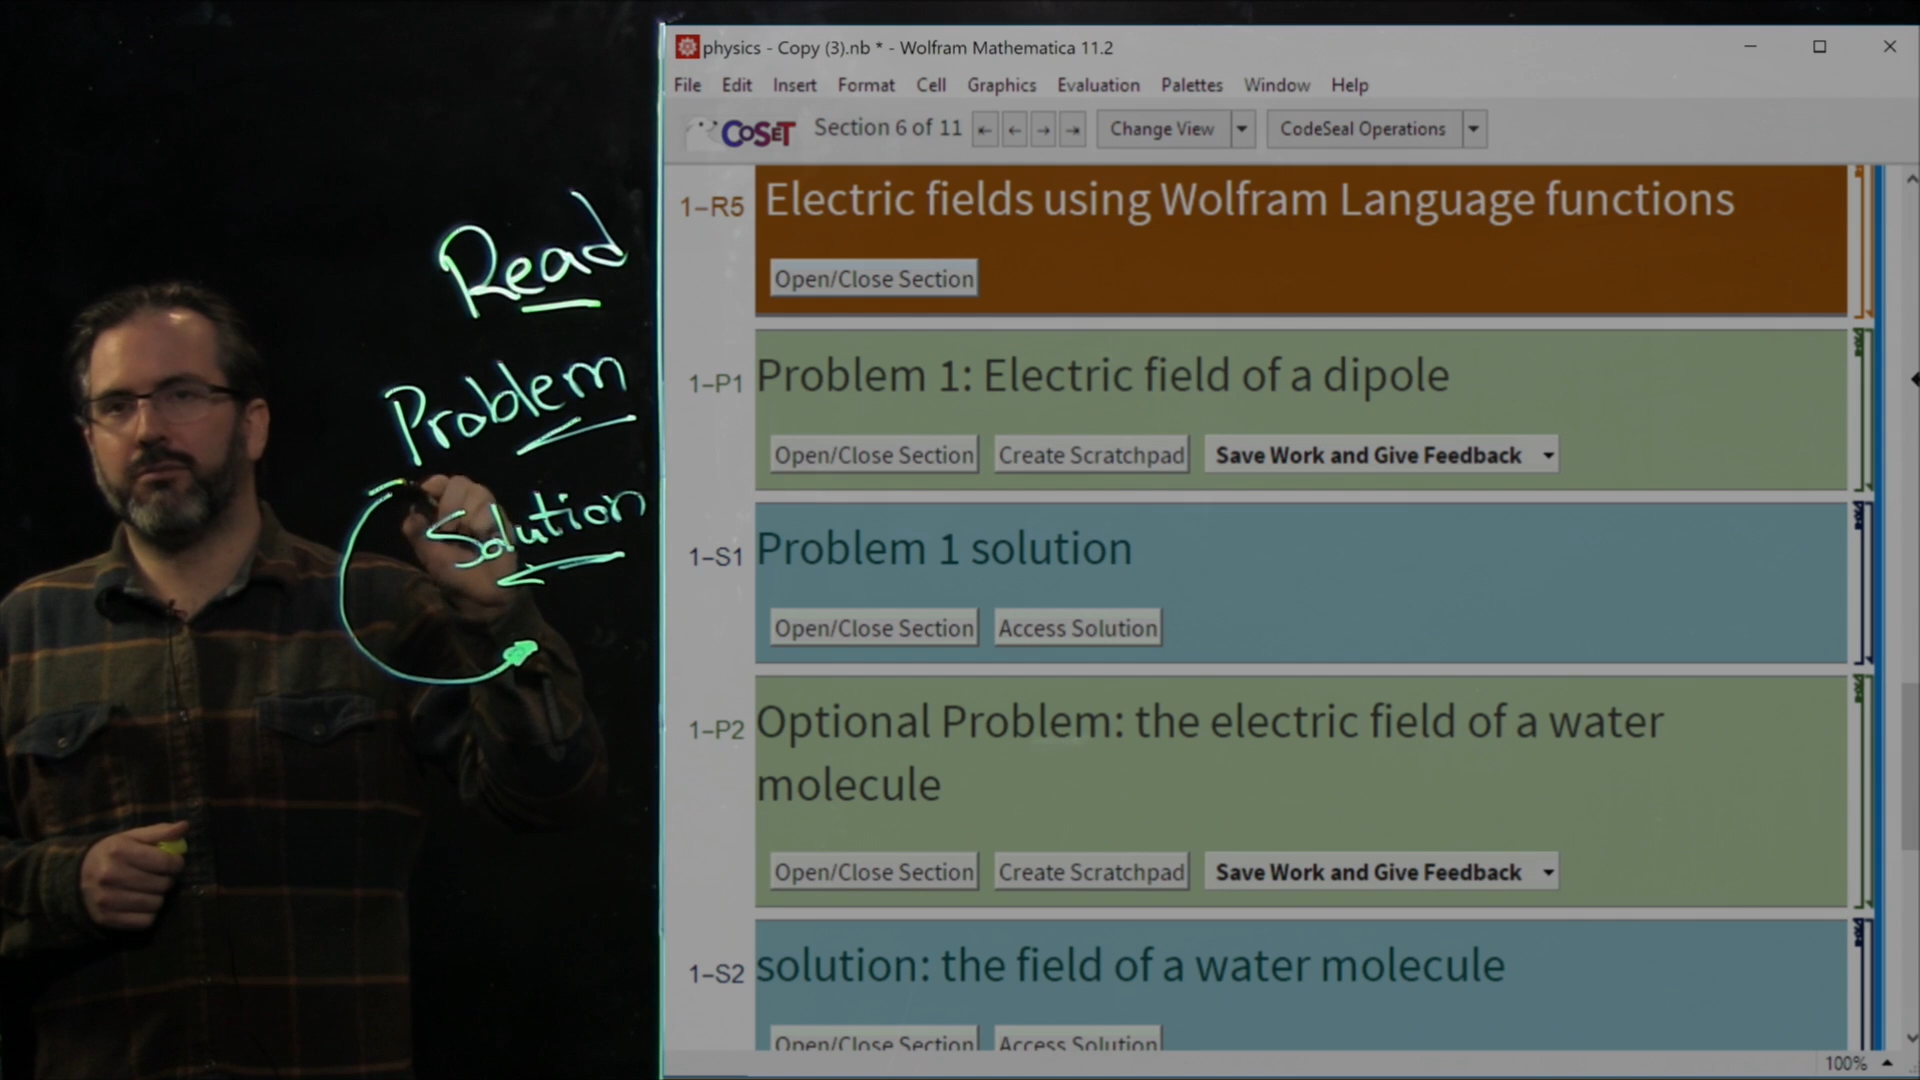 screen shot of video lecture showing Kyle Keane and CodeSeal